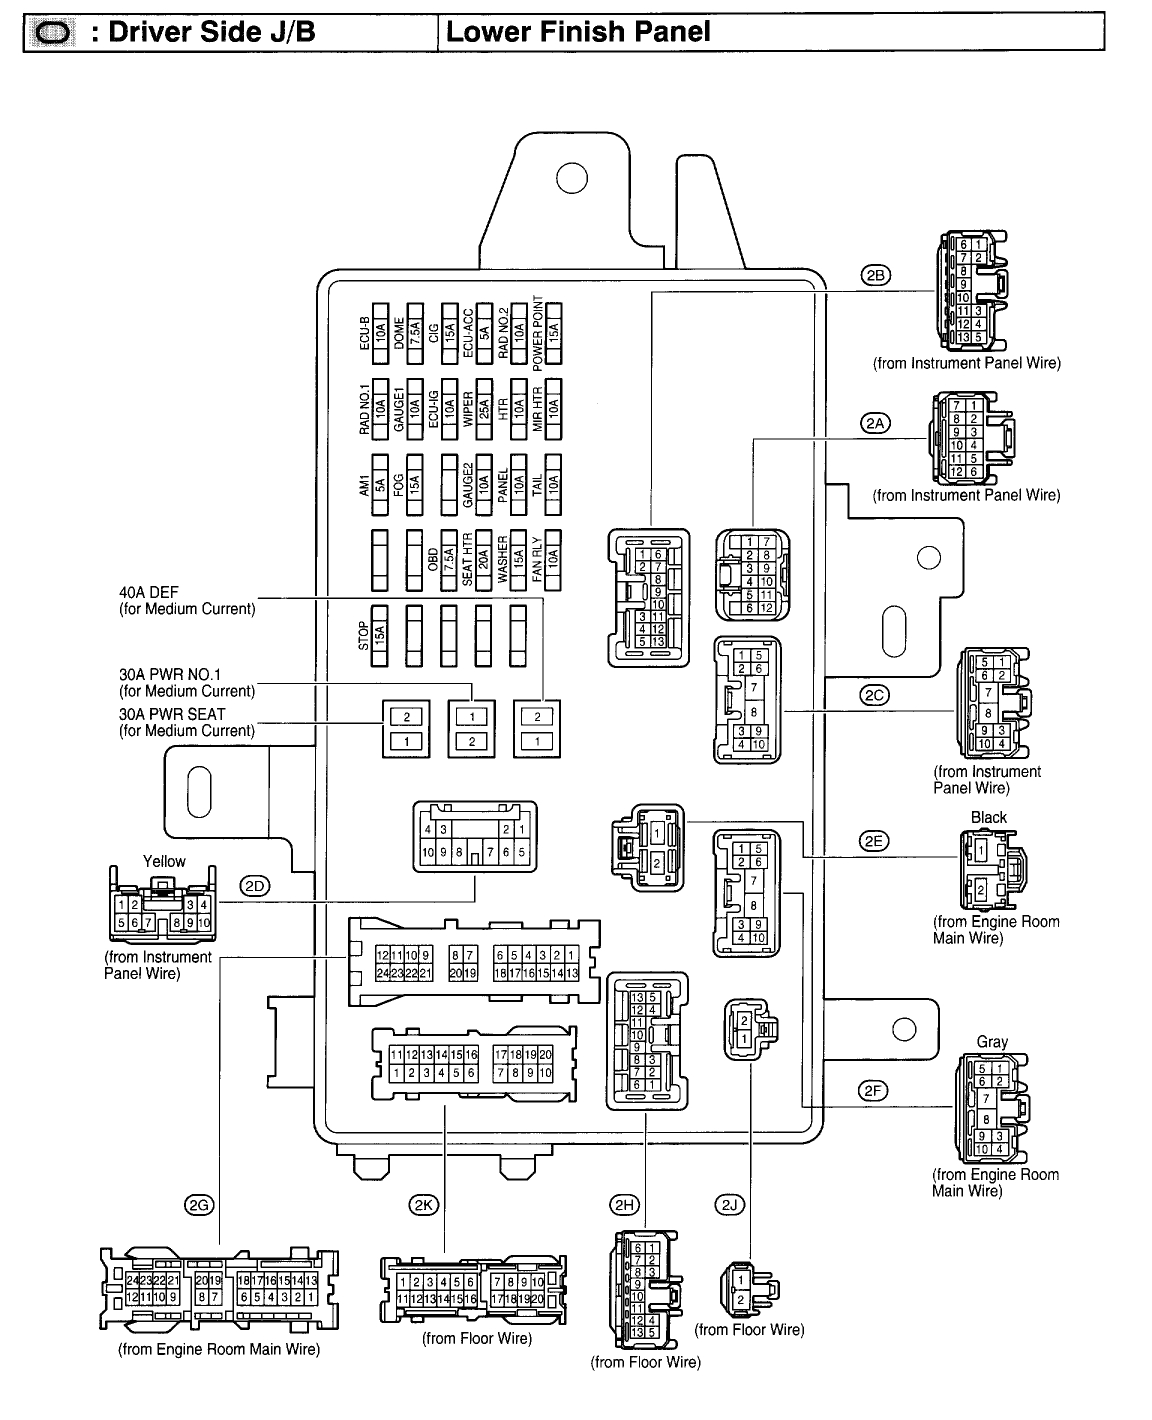 2004 toyota camry fuse diagram wiring diagram used 1994 toyota corolla fuse diagram wiring diagram paper